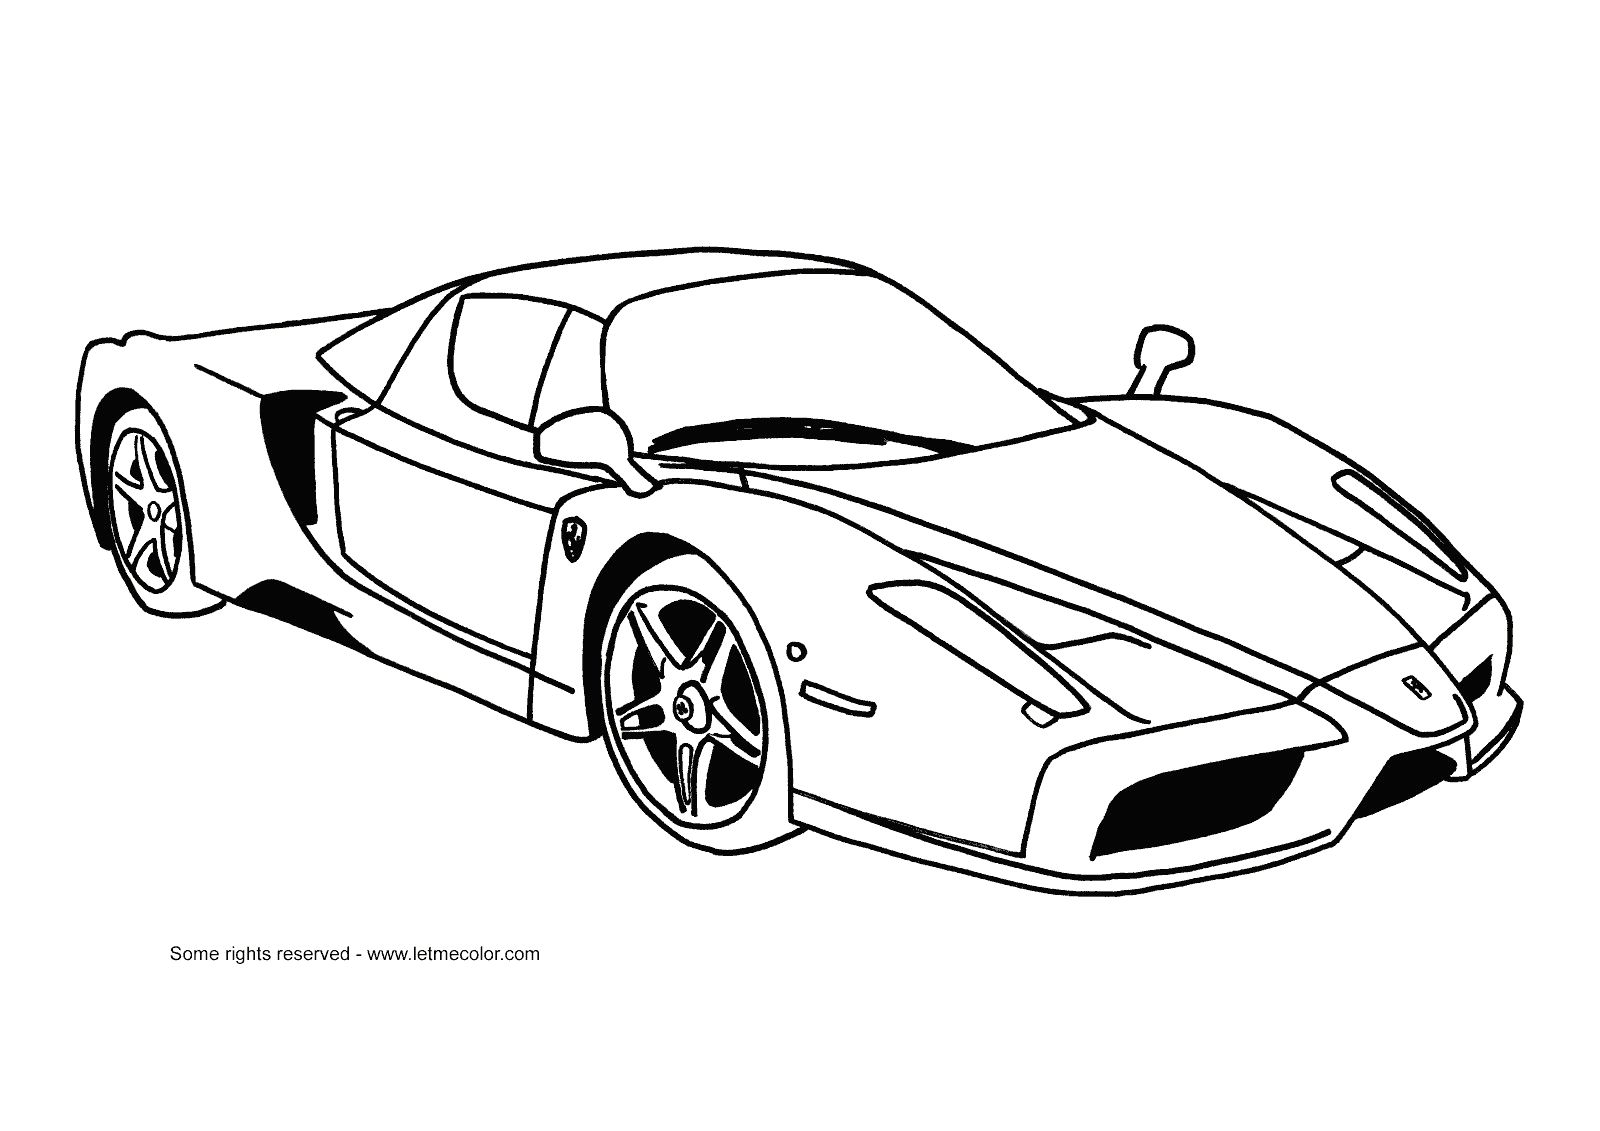 Ferrari Coloring Pages Cars Coloring Pages Race Car Coloring Pages Truck Coloring Pages